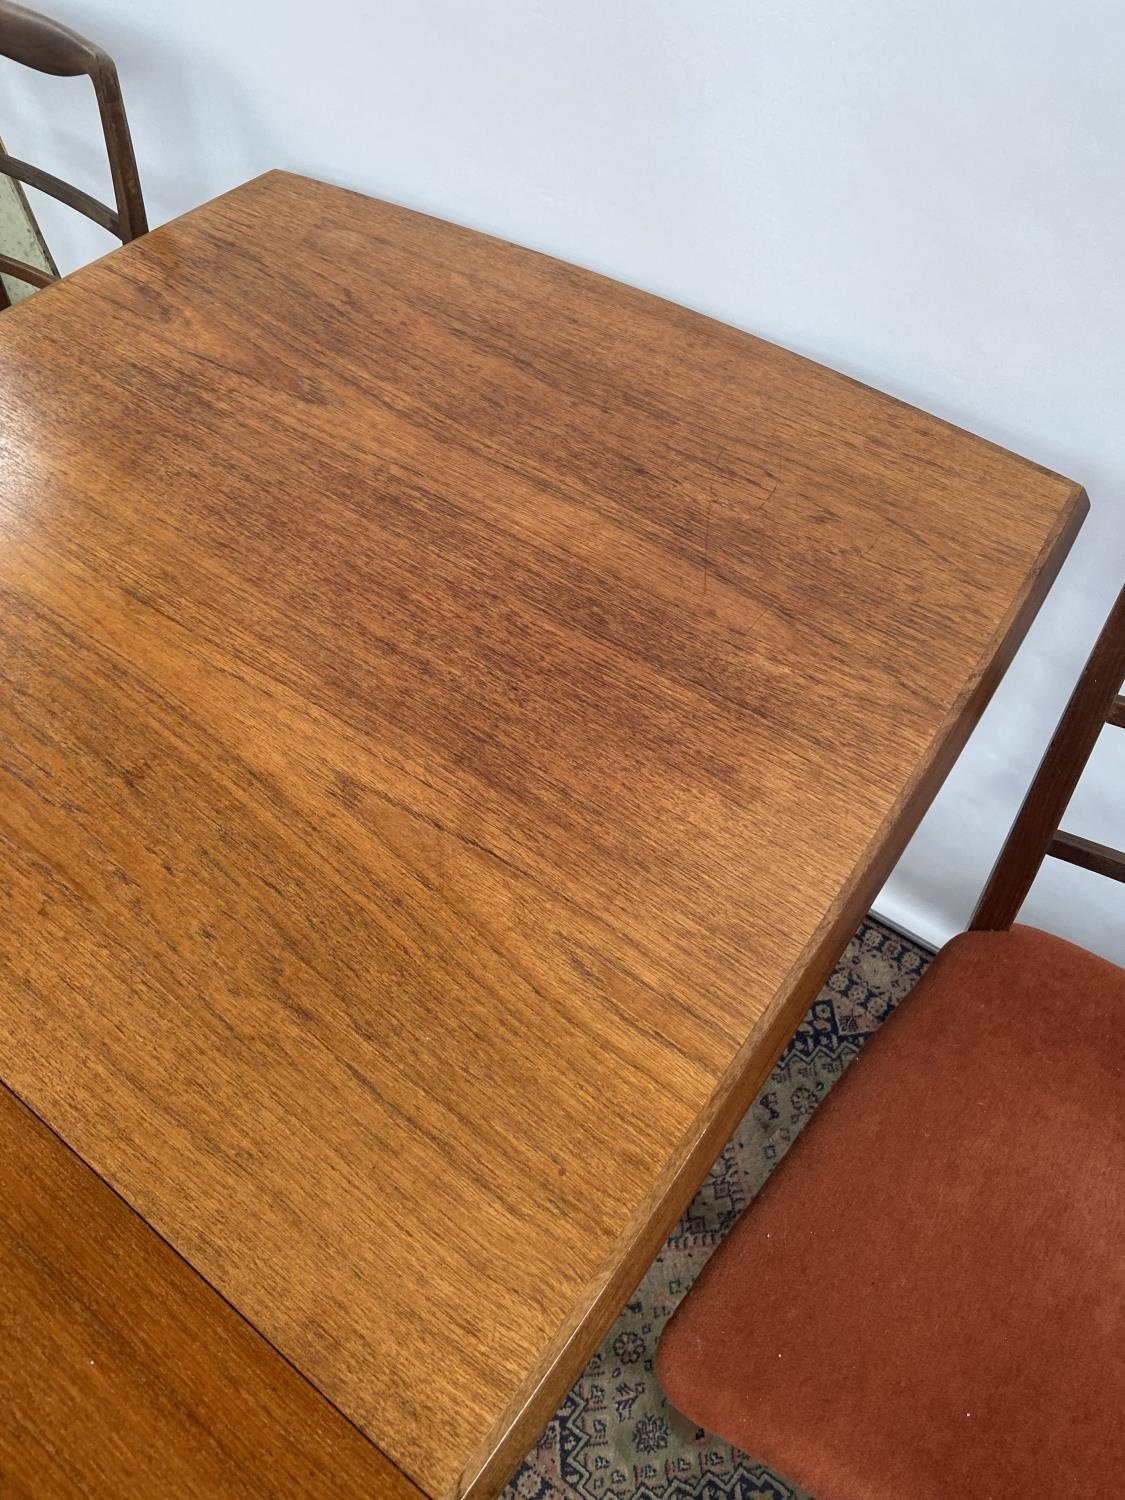 A Retro mid century teak dining table and four matching chairs produced by Vanson. [Table extended - Image 11 of 13